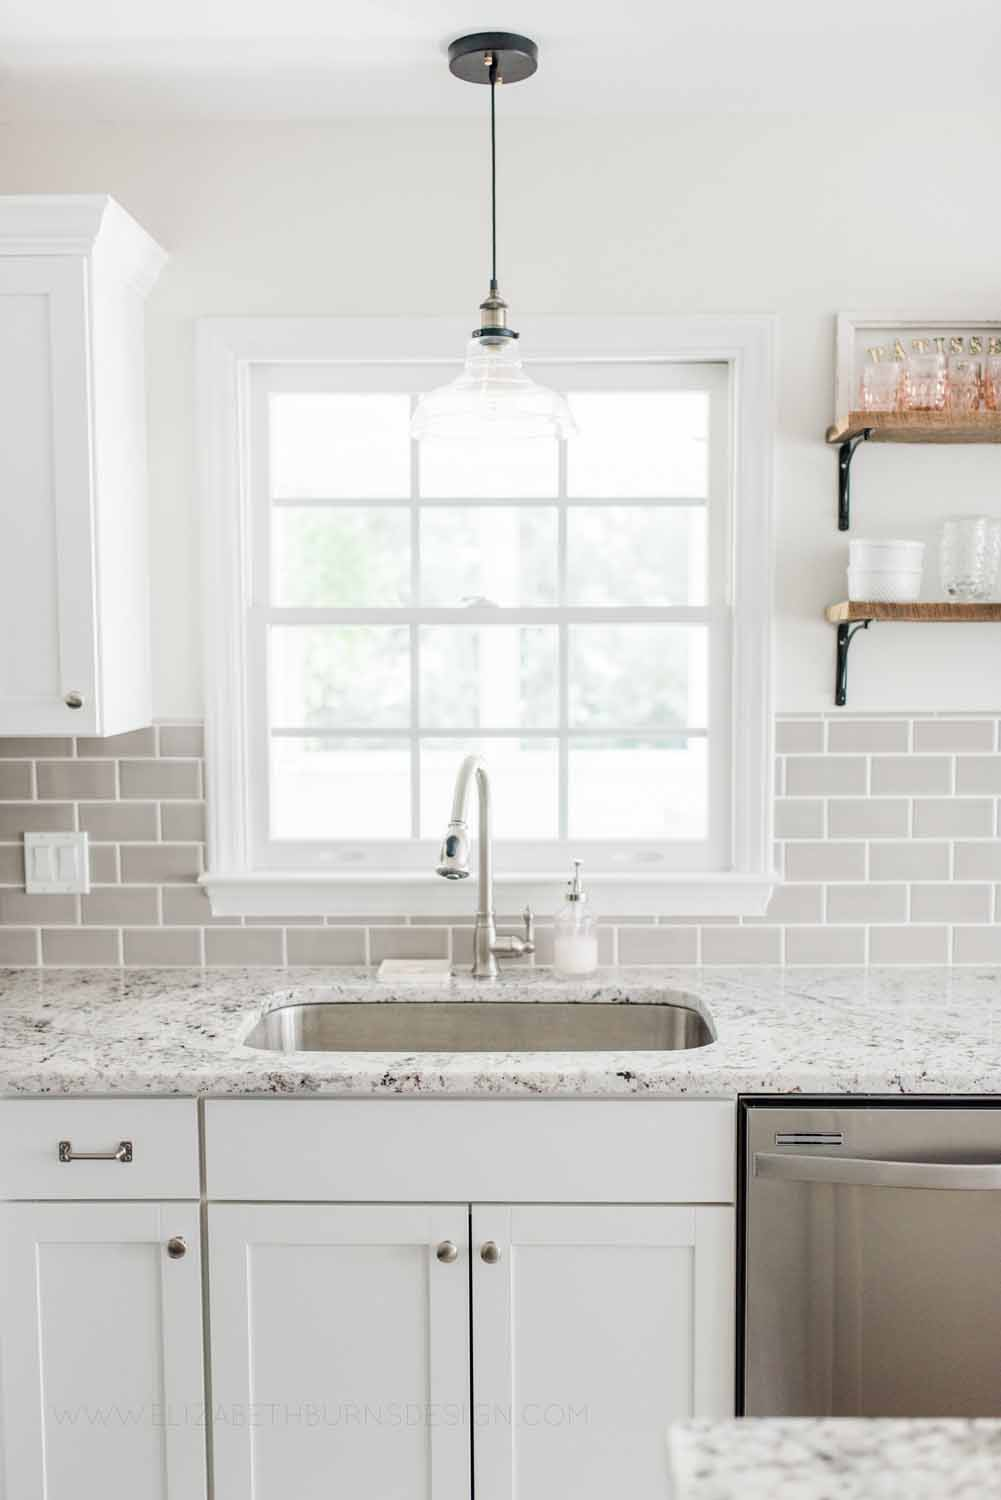 Elizabeth Burns Design Raleigh Interior Designer 1990s house remodel before and after Benjamin Moore Classic Gray 1548 Arcadia White Shaker Cabinets Gray Subway Tile Backsplash (6).jpg